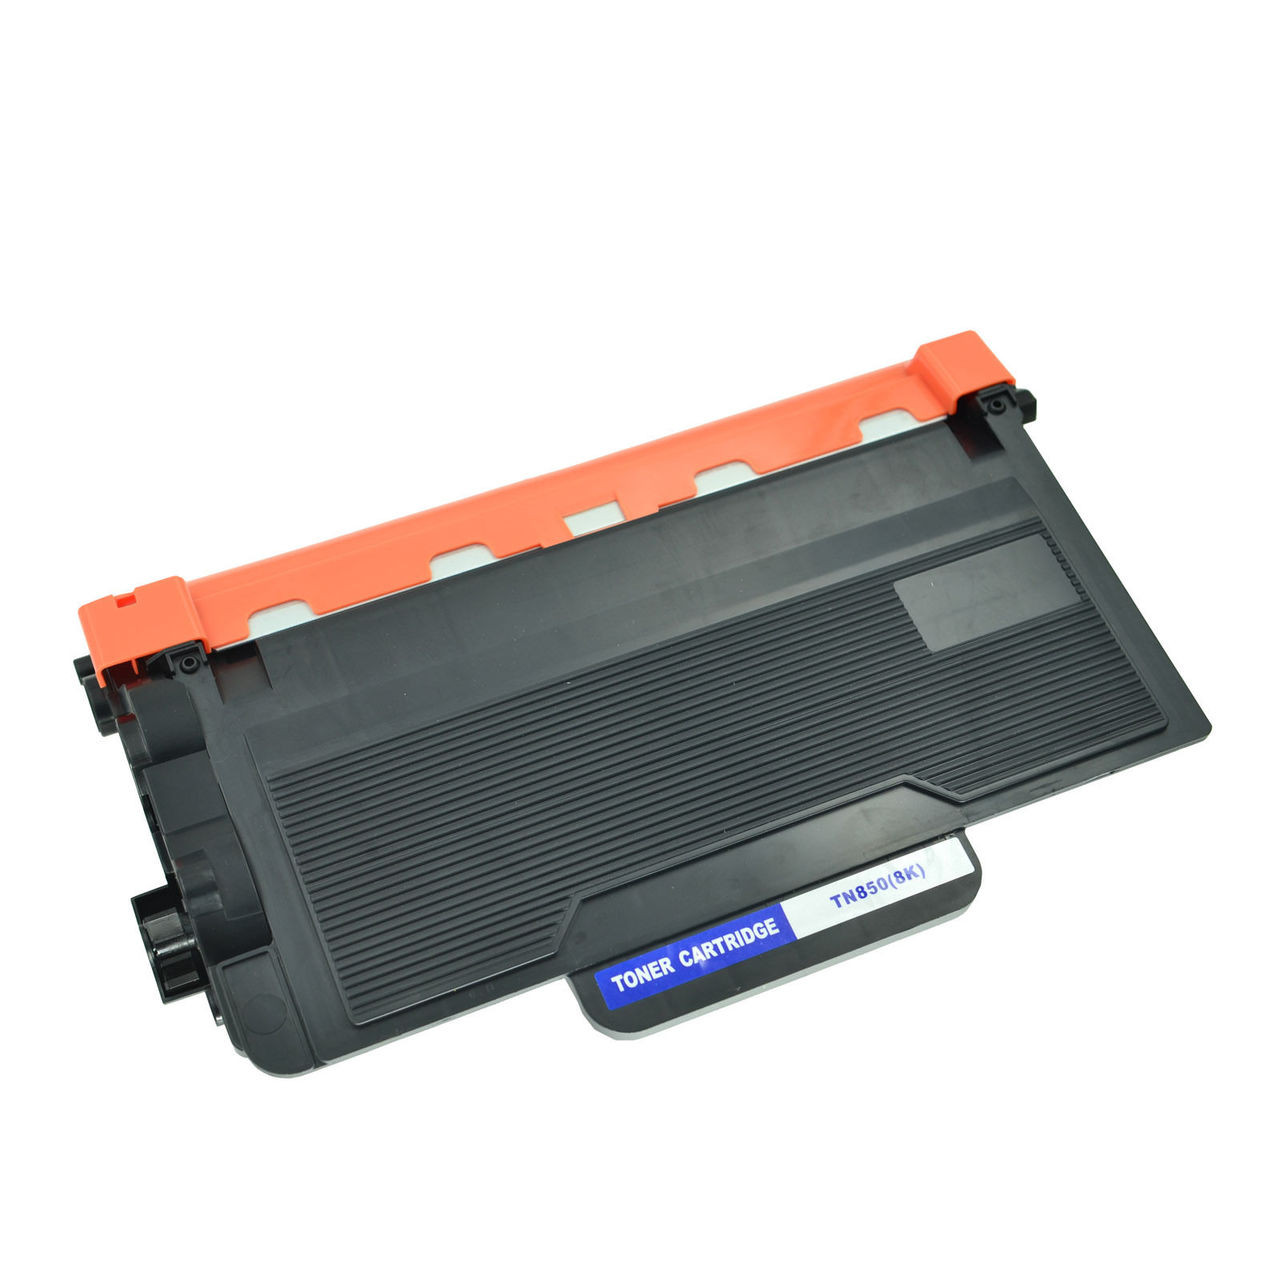 Clearprint TN850 Compatible Toner Cartridge for Brother HLL6200DW HLL6200DWT MFCL5800DW MFCL5900DW DCPL5500DN DCPL5600DN DCPL5650DN